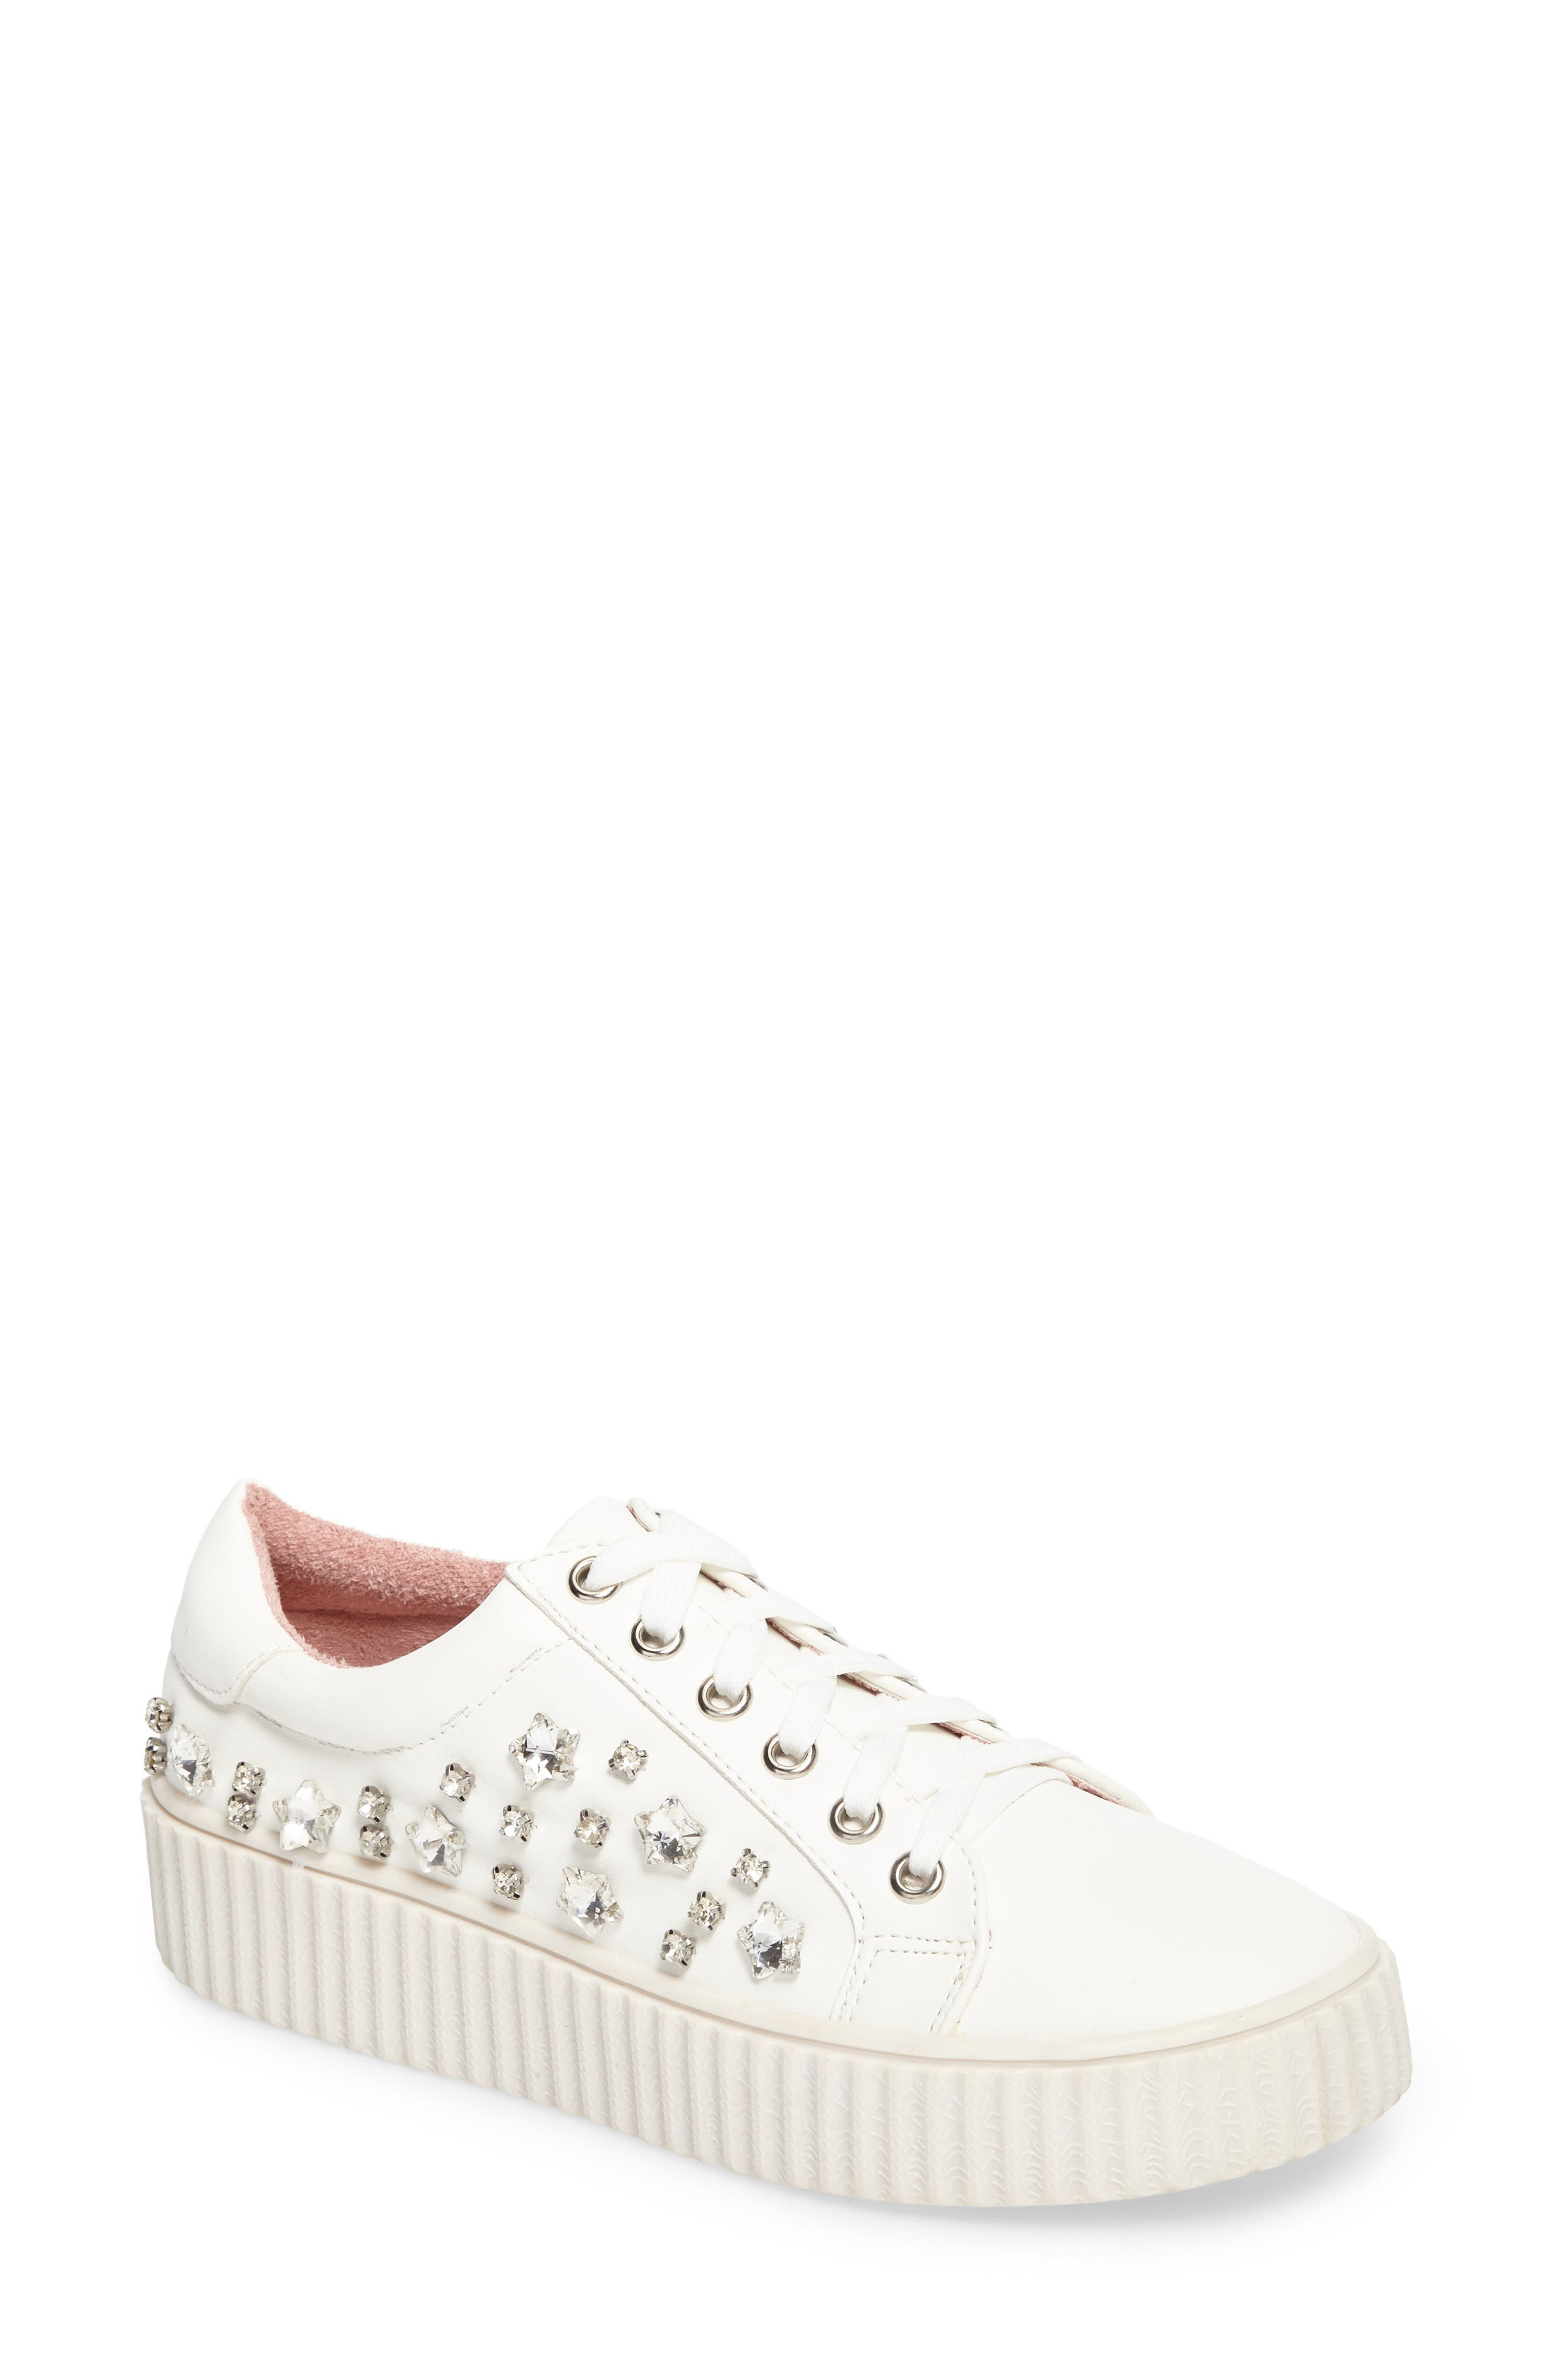 Pam Embellished Platform Sneaker,                             Main thumbnail 1, color,                             WHITE